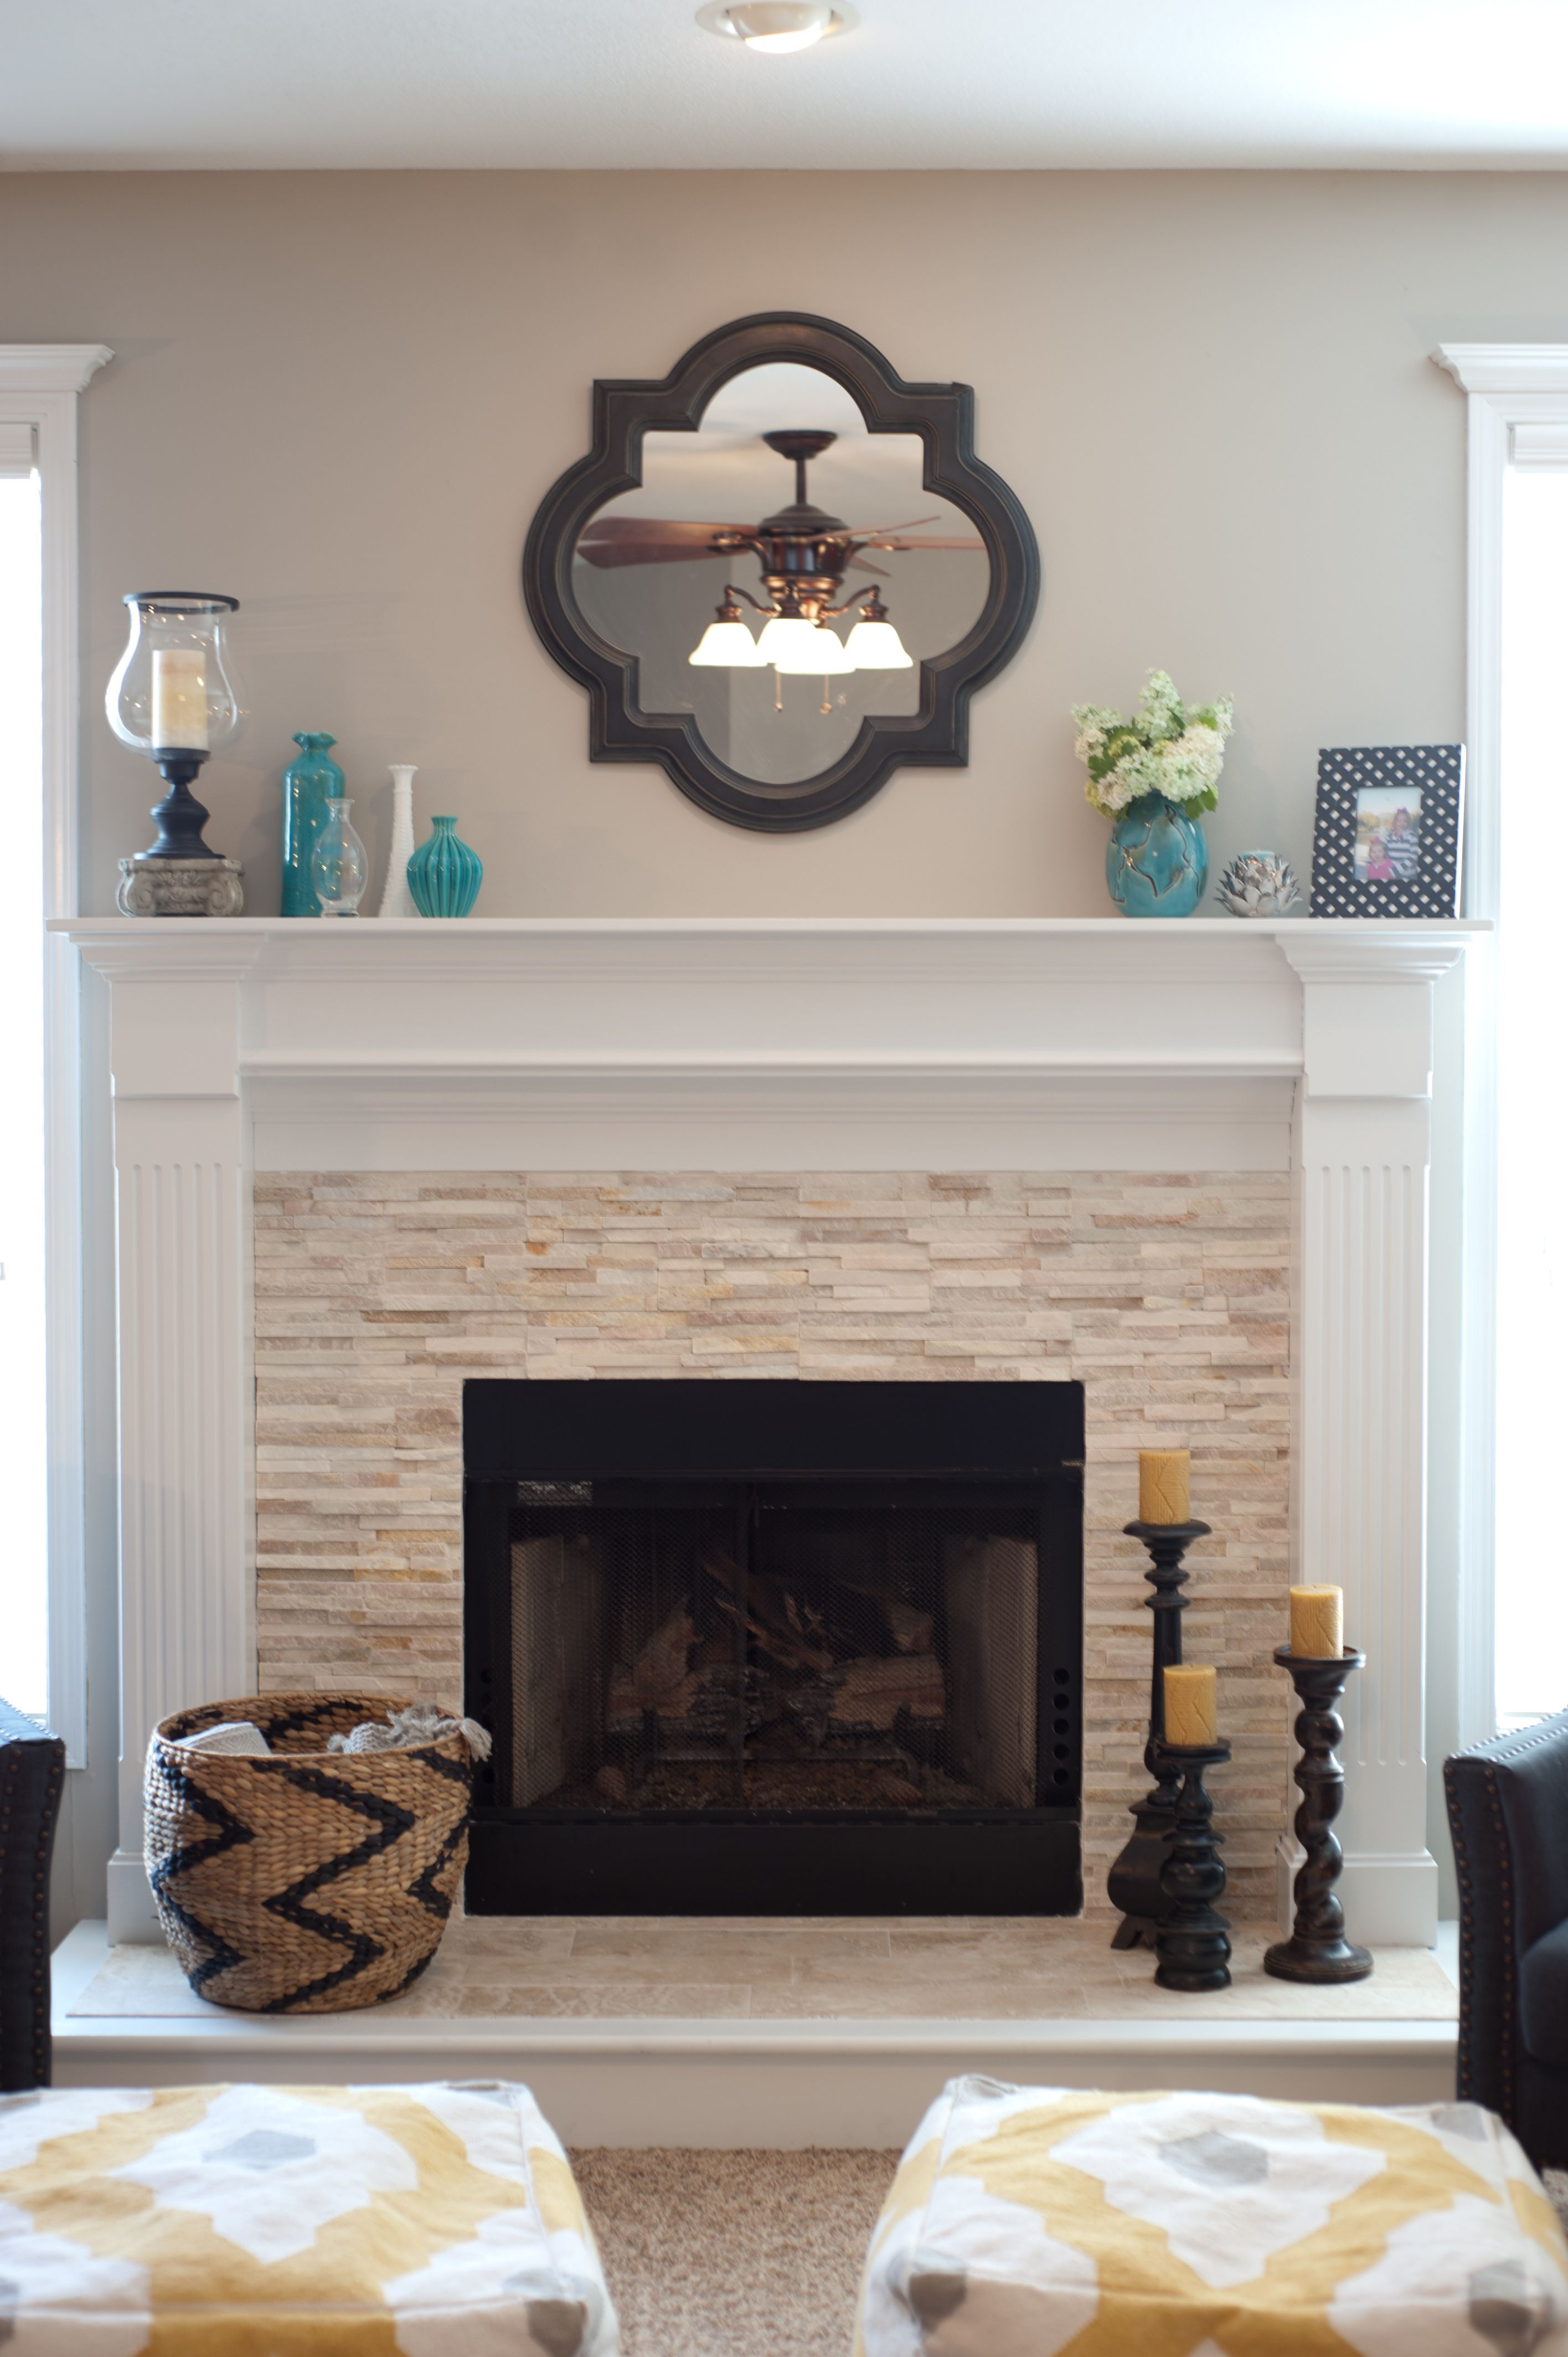 Fireplace Wall Mantels Vintage Wall Mirror Above Stone Fireplace Designs With